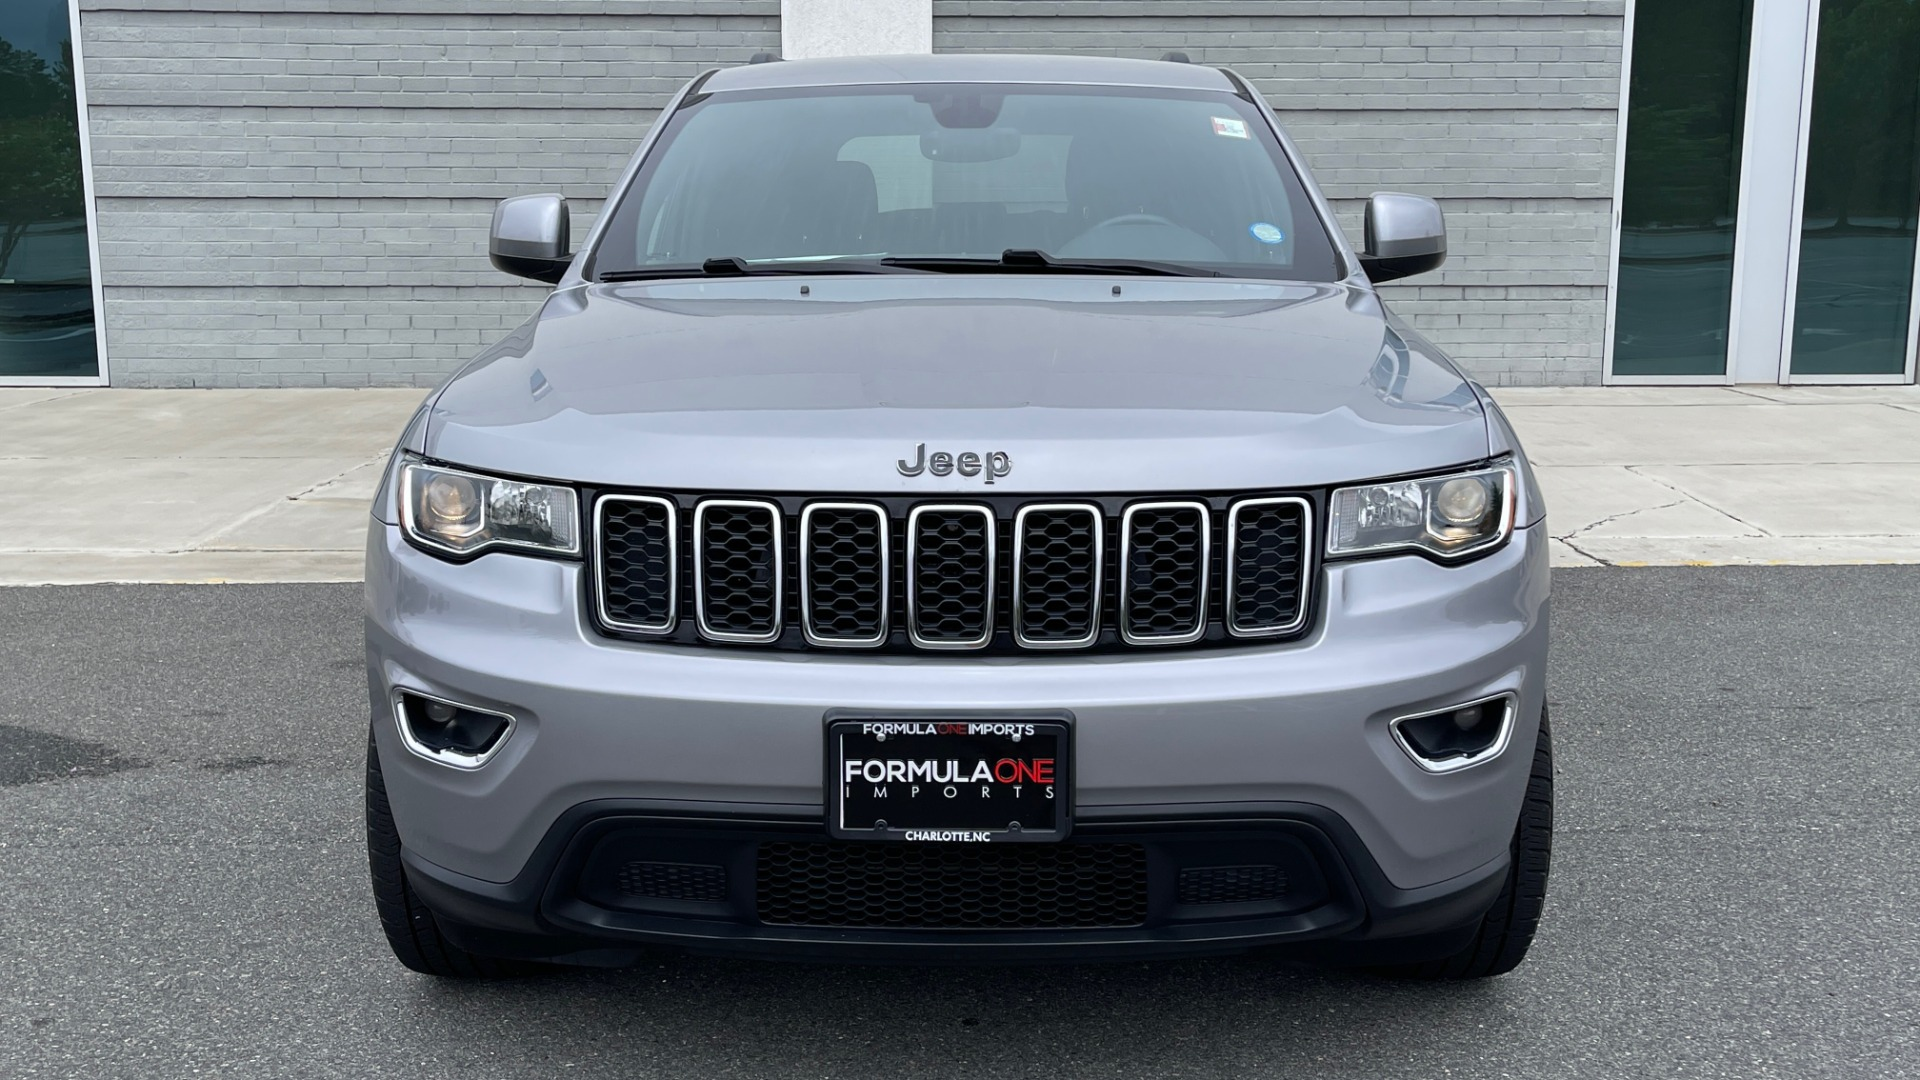 Used 2017 Jeep GRAND CHEROKEE LAREDO E 4X4 / KEYLESS-GO / 8.4IN TOUCH SCREEN / REARVIEW for sale $27,595 at Formula Imports in Charlotte NC 28227 10